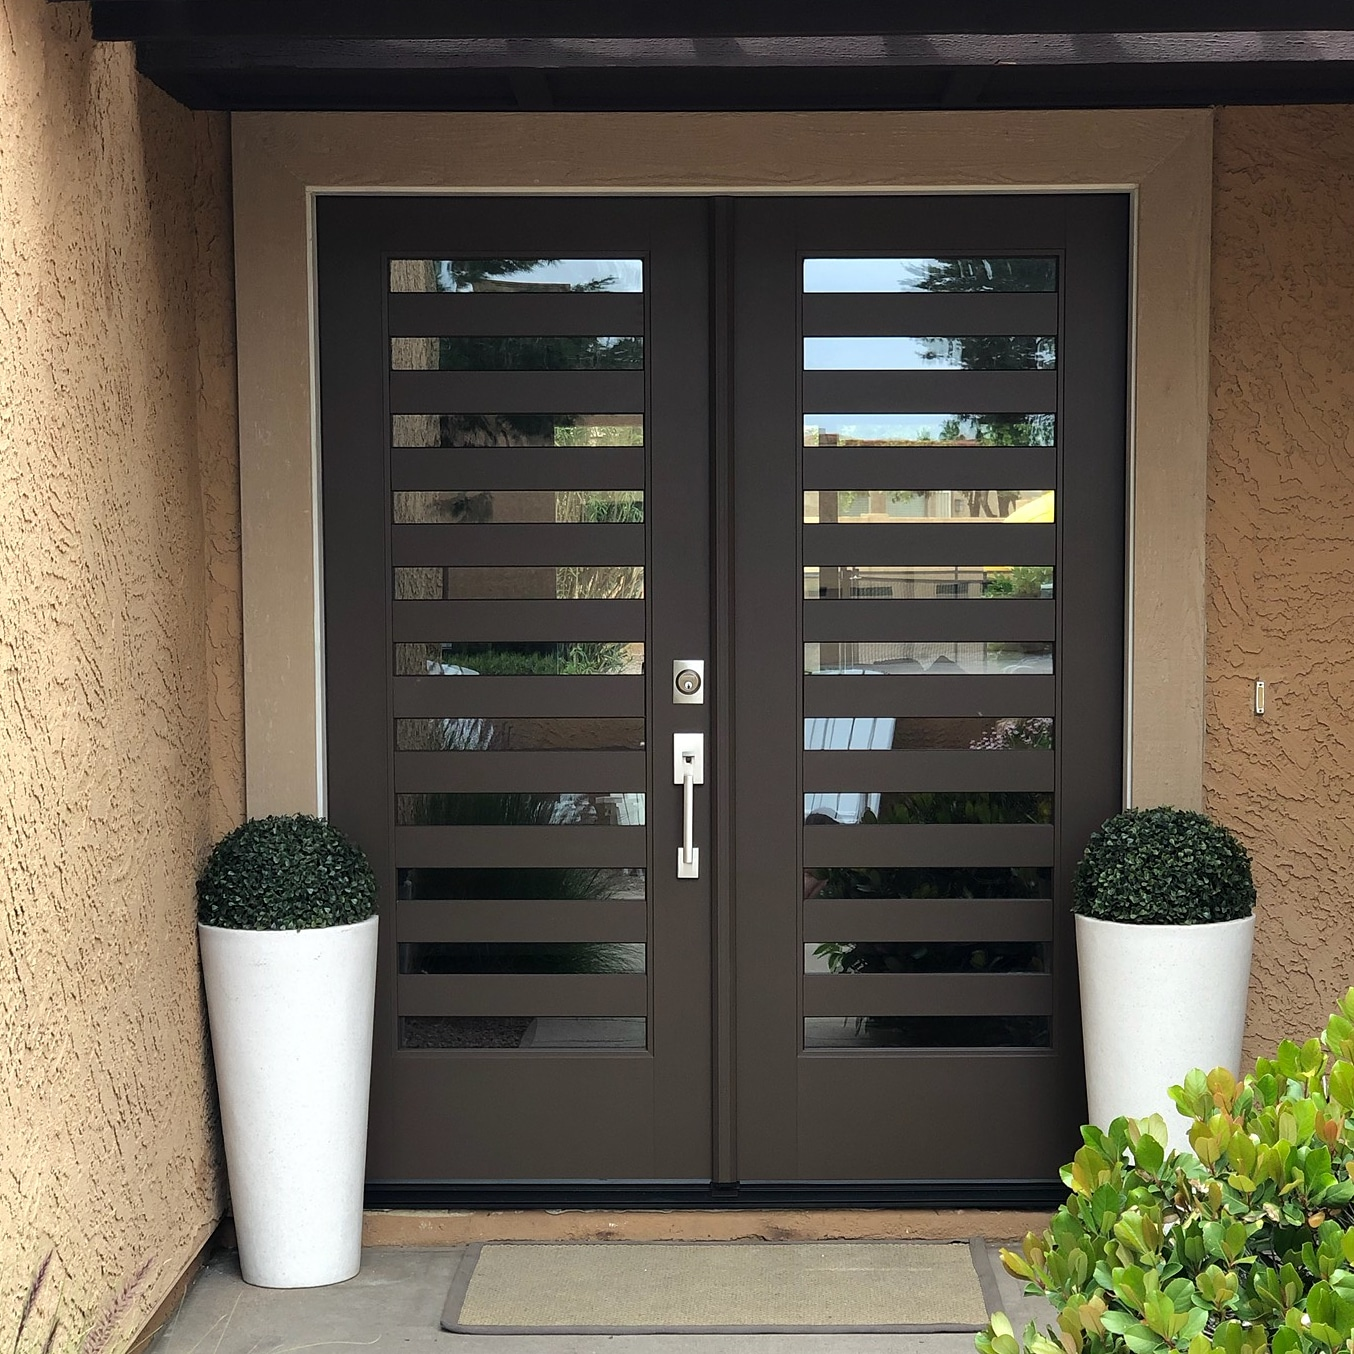 Arizona Window and Door in Scottsdale and Tucson showing front door with small windows